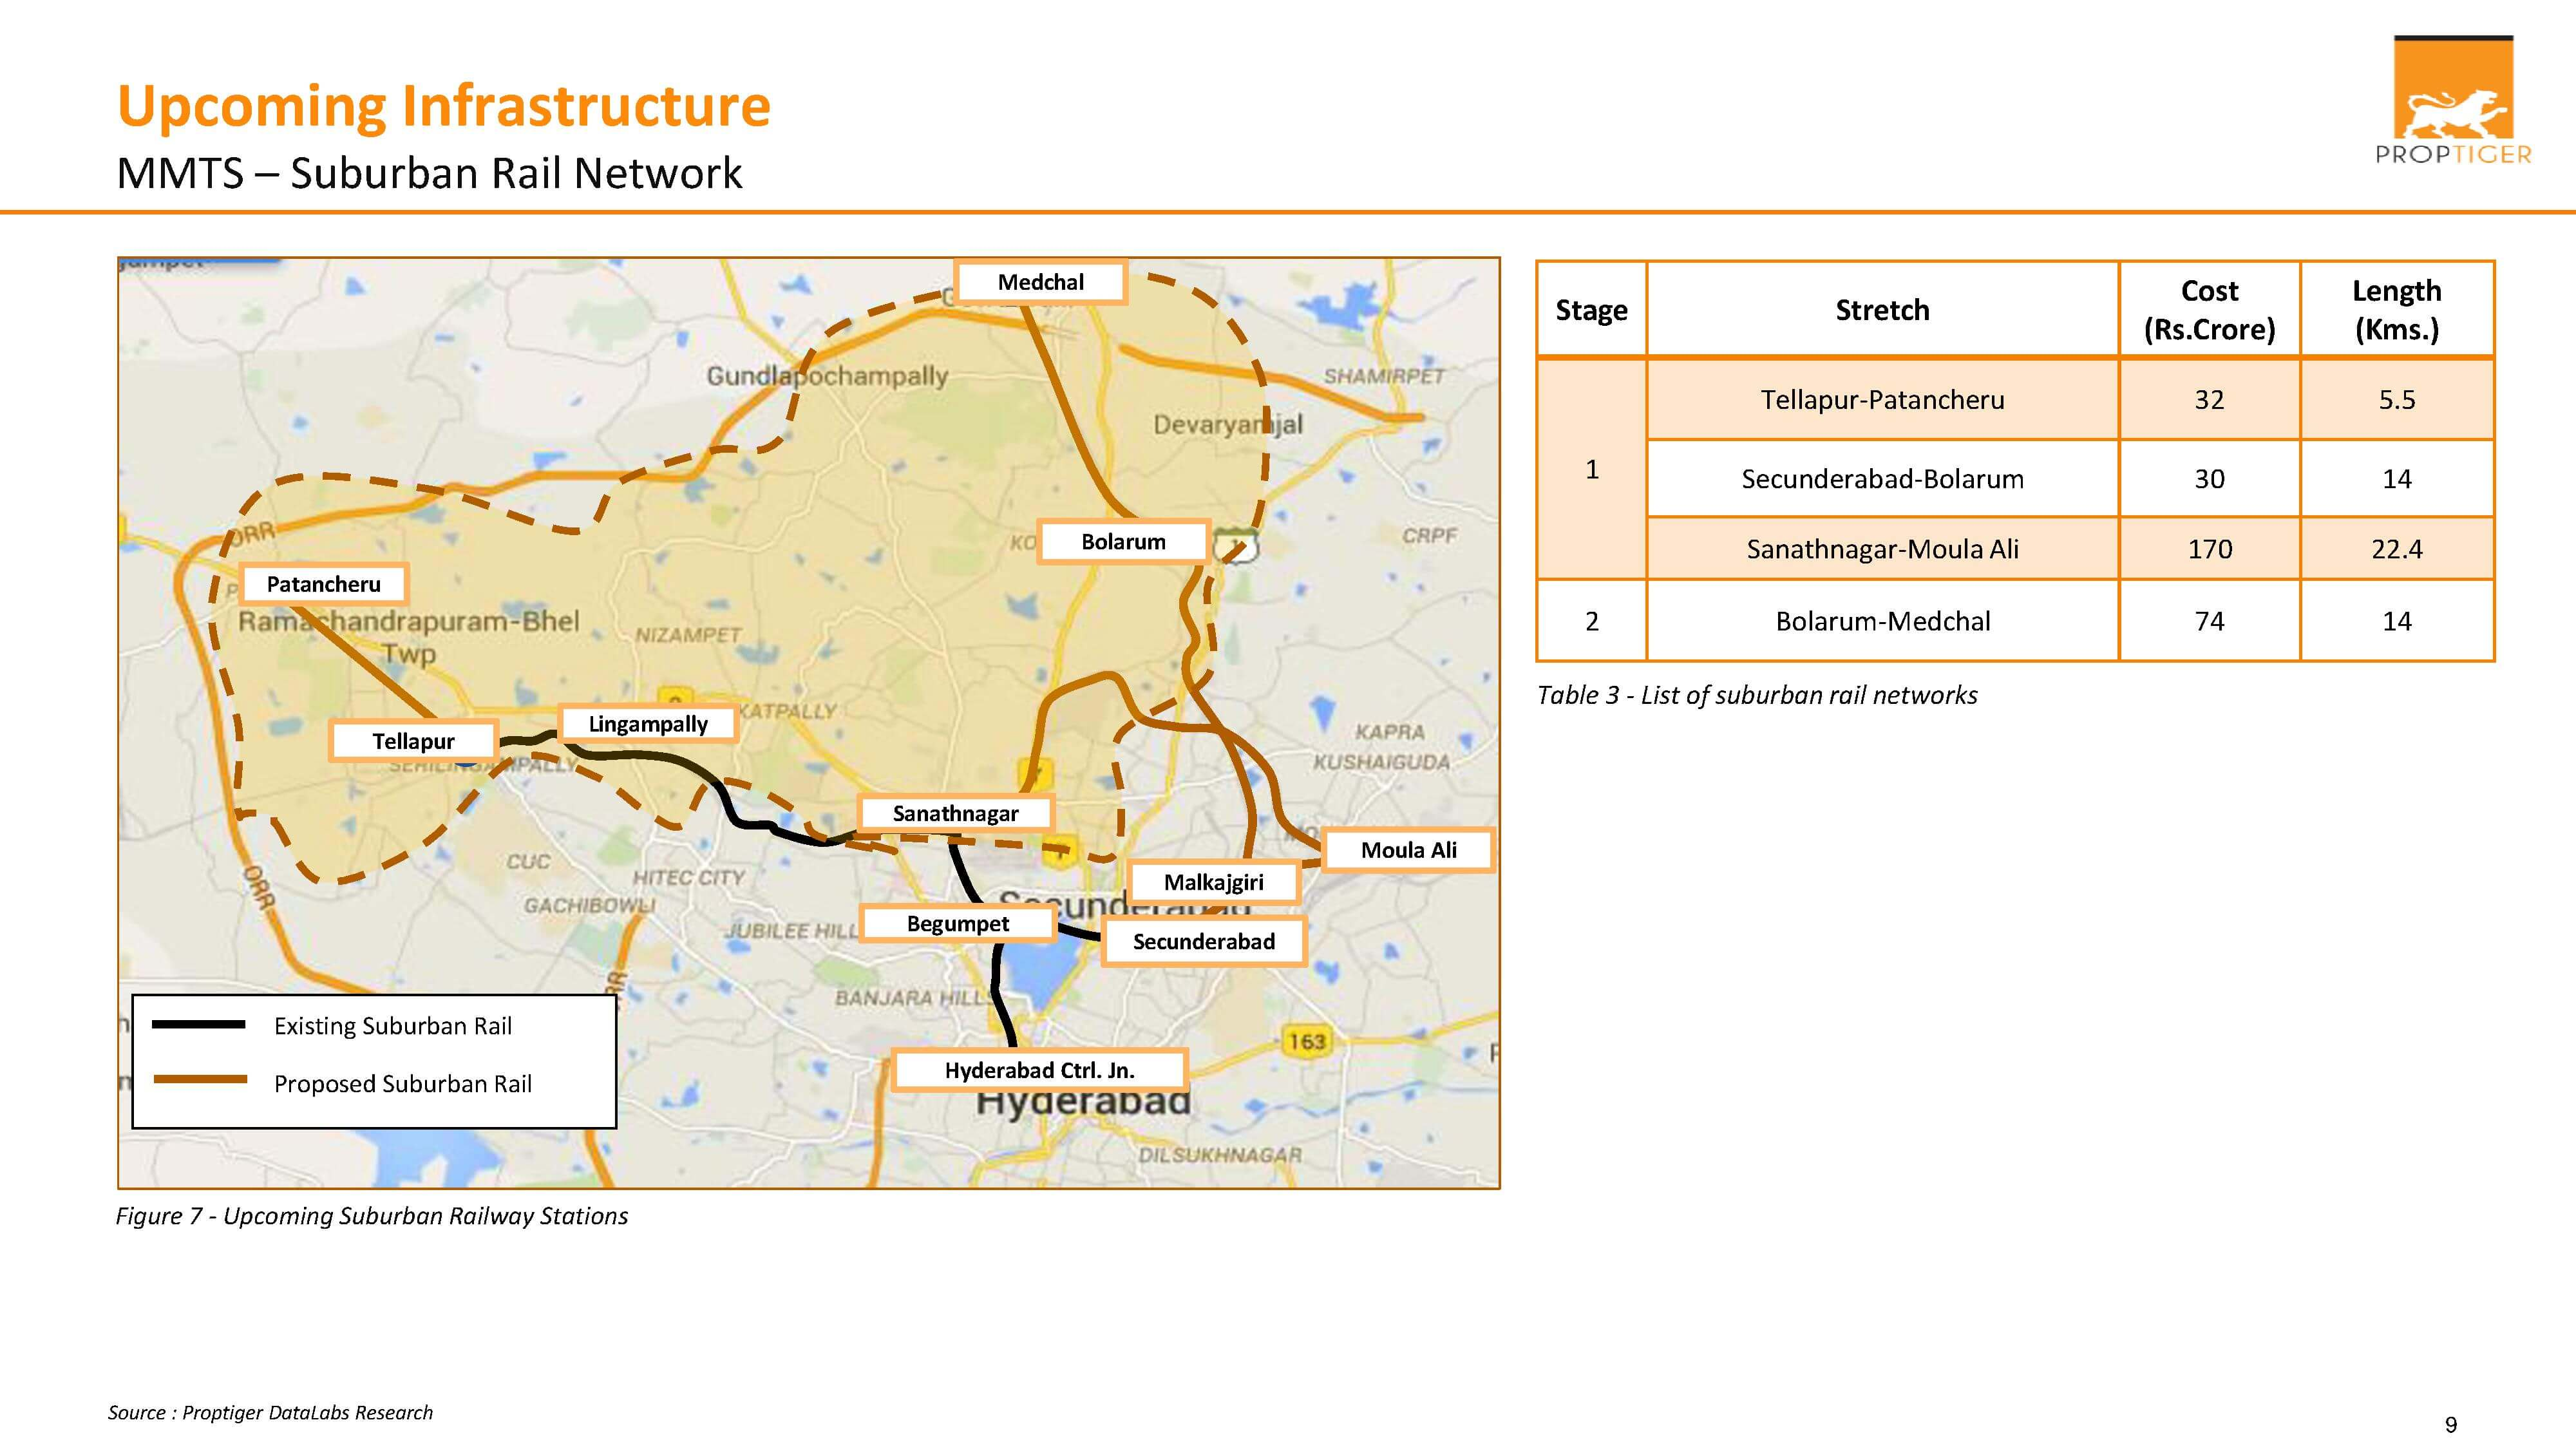 Upcoming Infrastructure - MMTS (Suburban Rail Network)